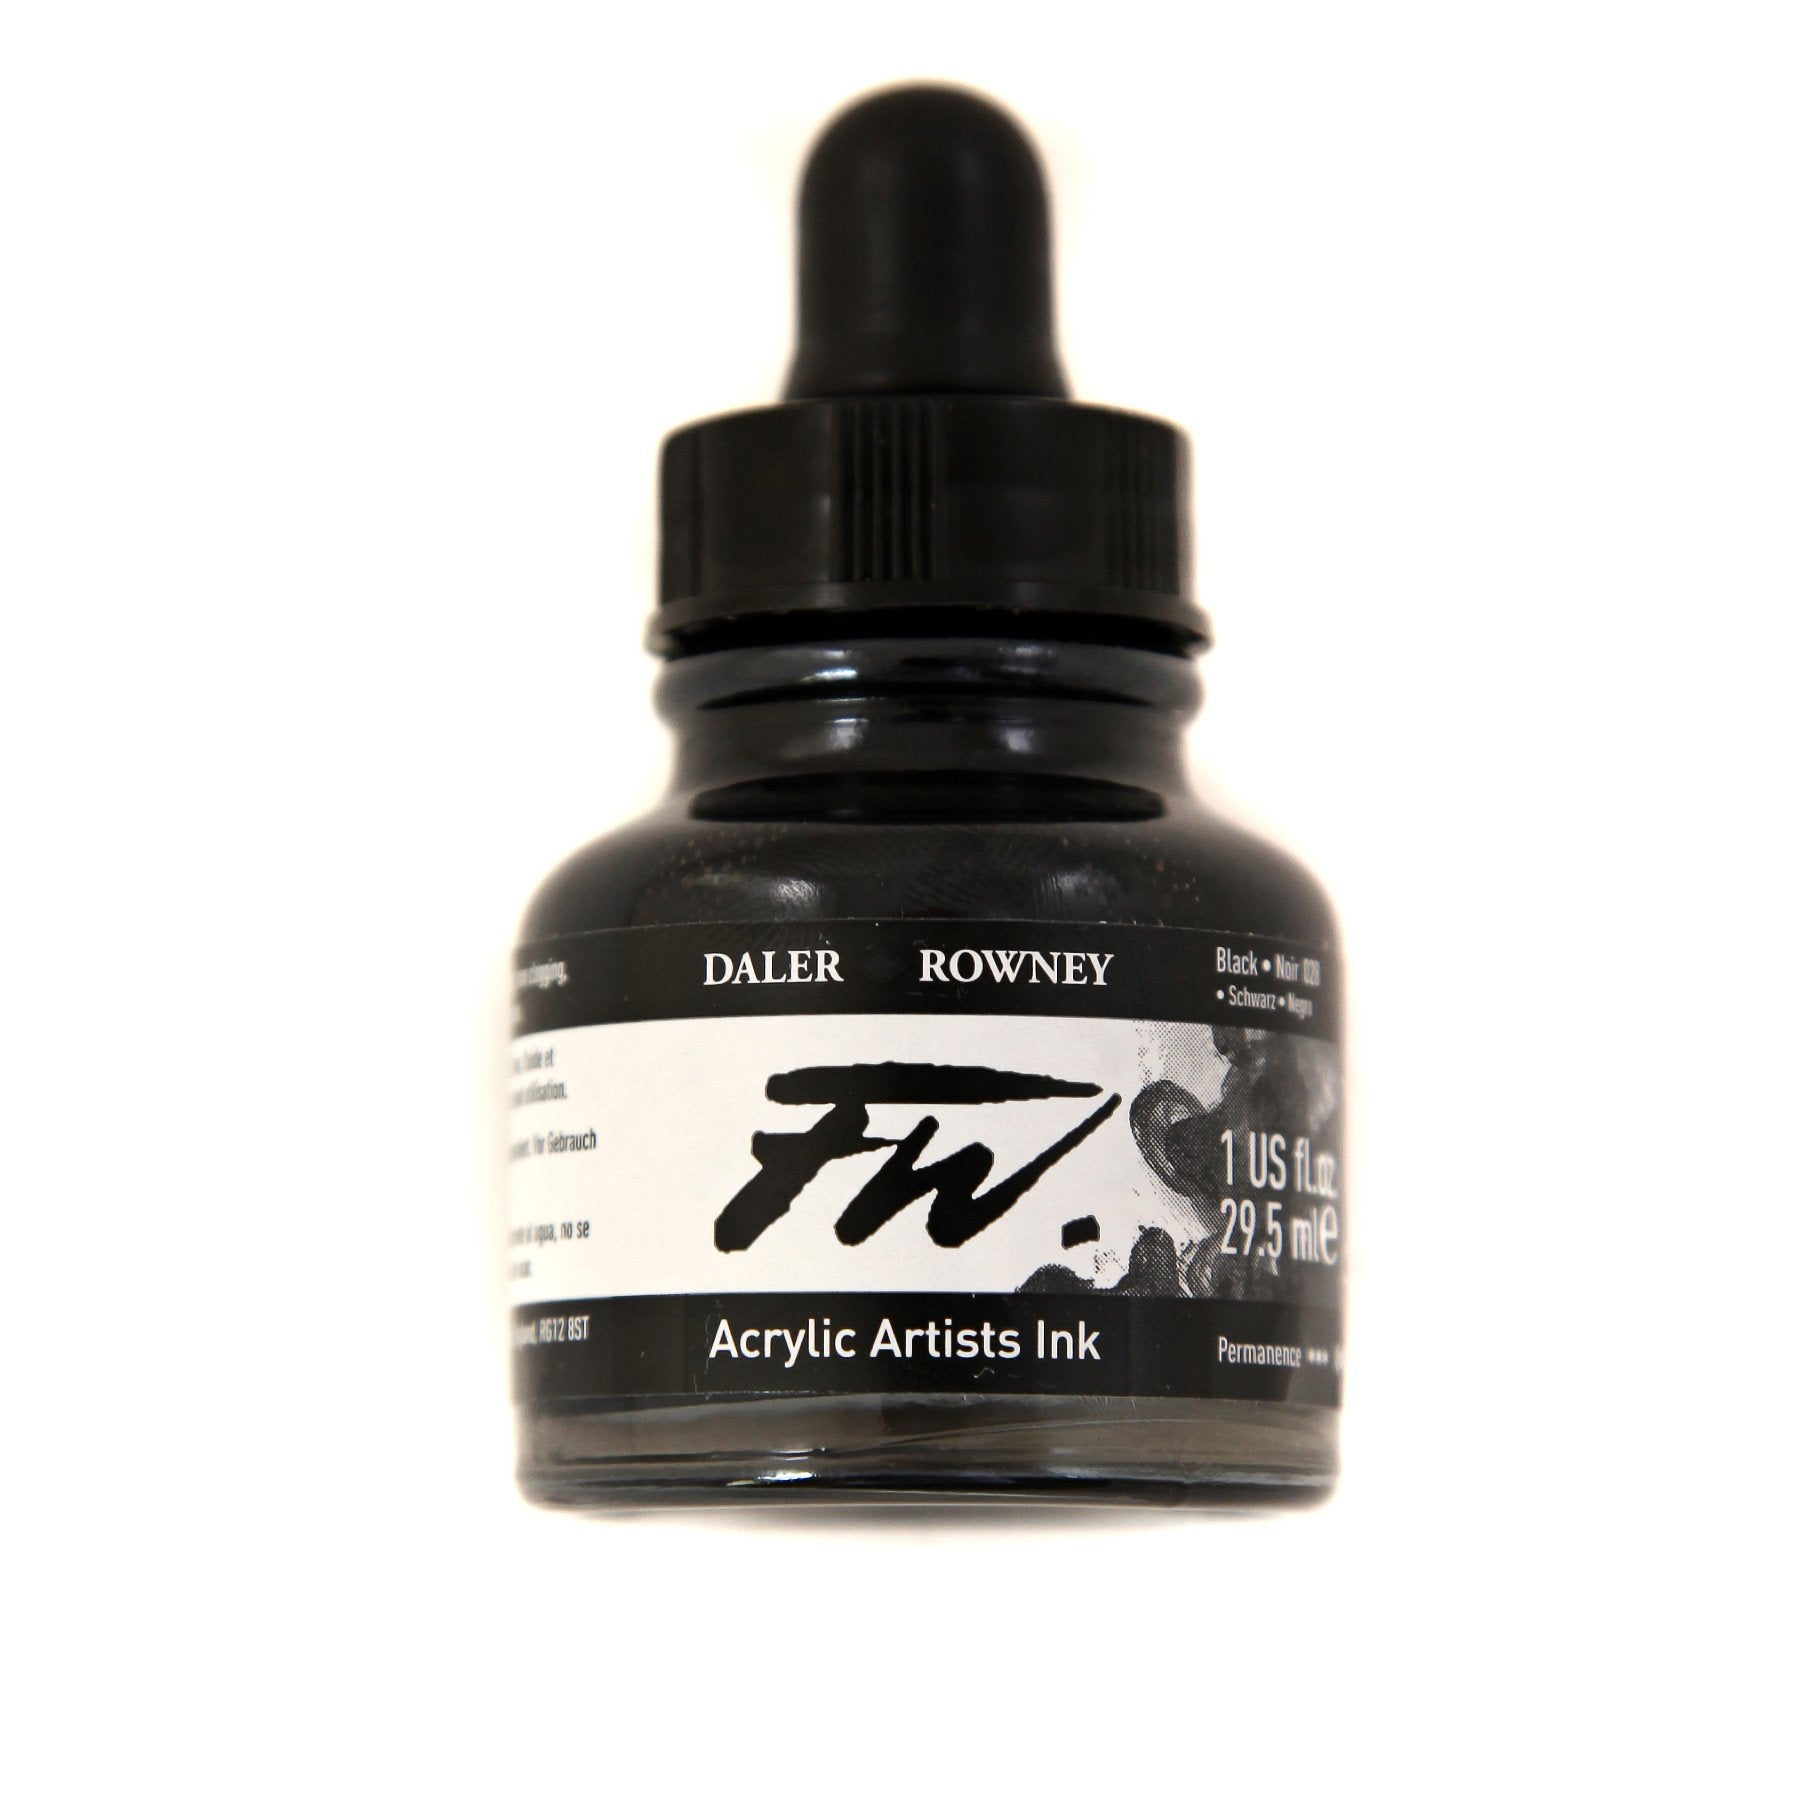 Daler-Rowney FW Acrylic Artists Ink, 1 oz. Dropper-Top Bottle, Black India